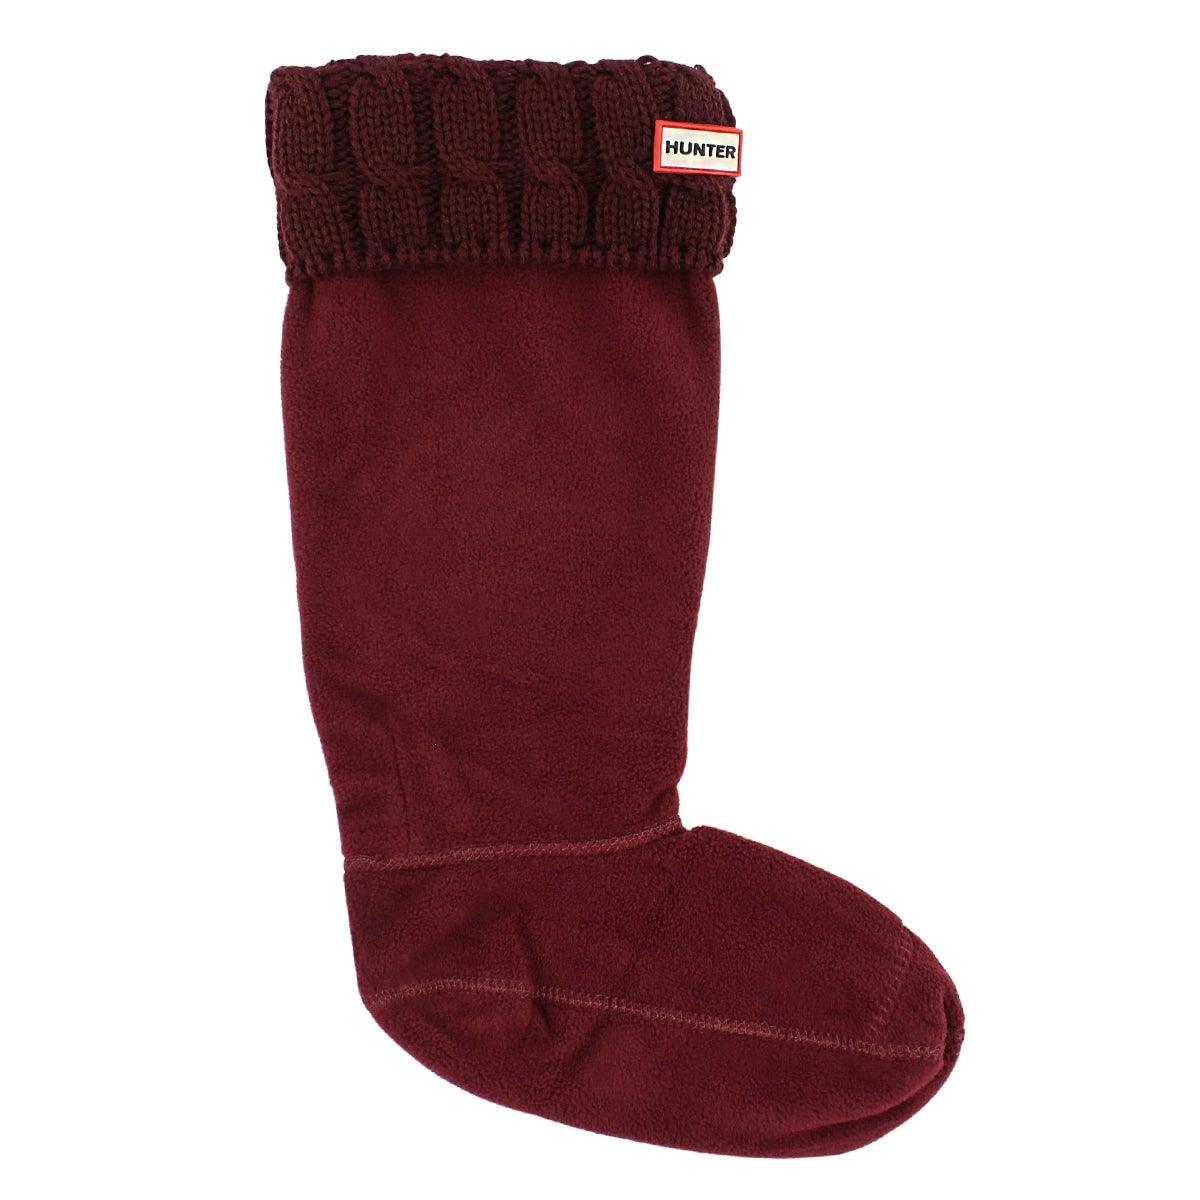 Lds 6 Stitch Cable dulse boot sock